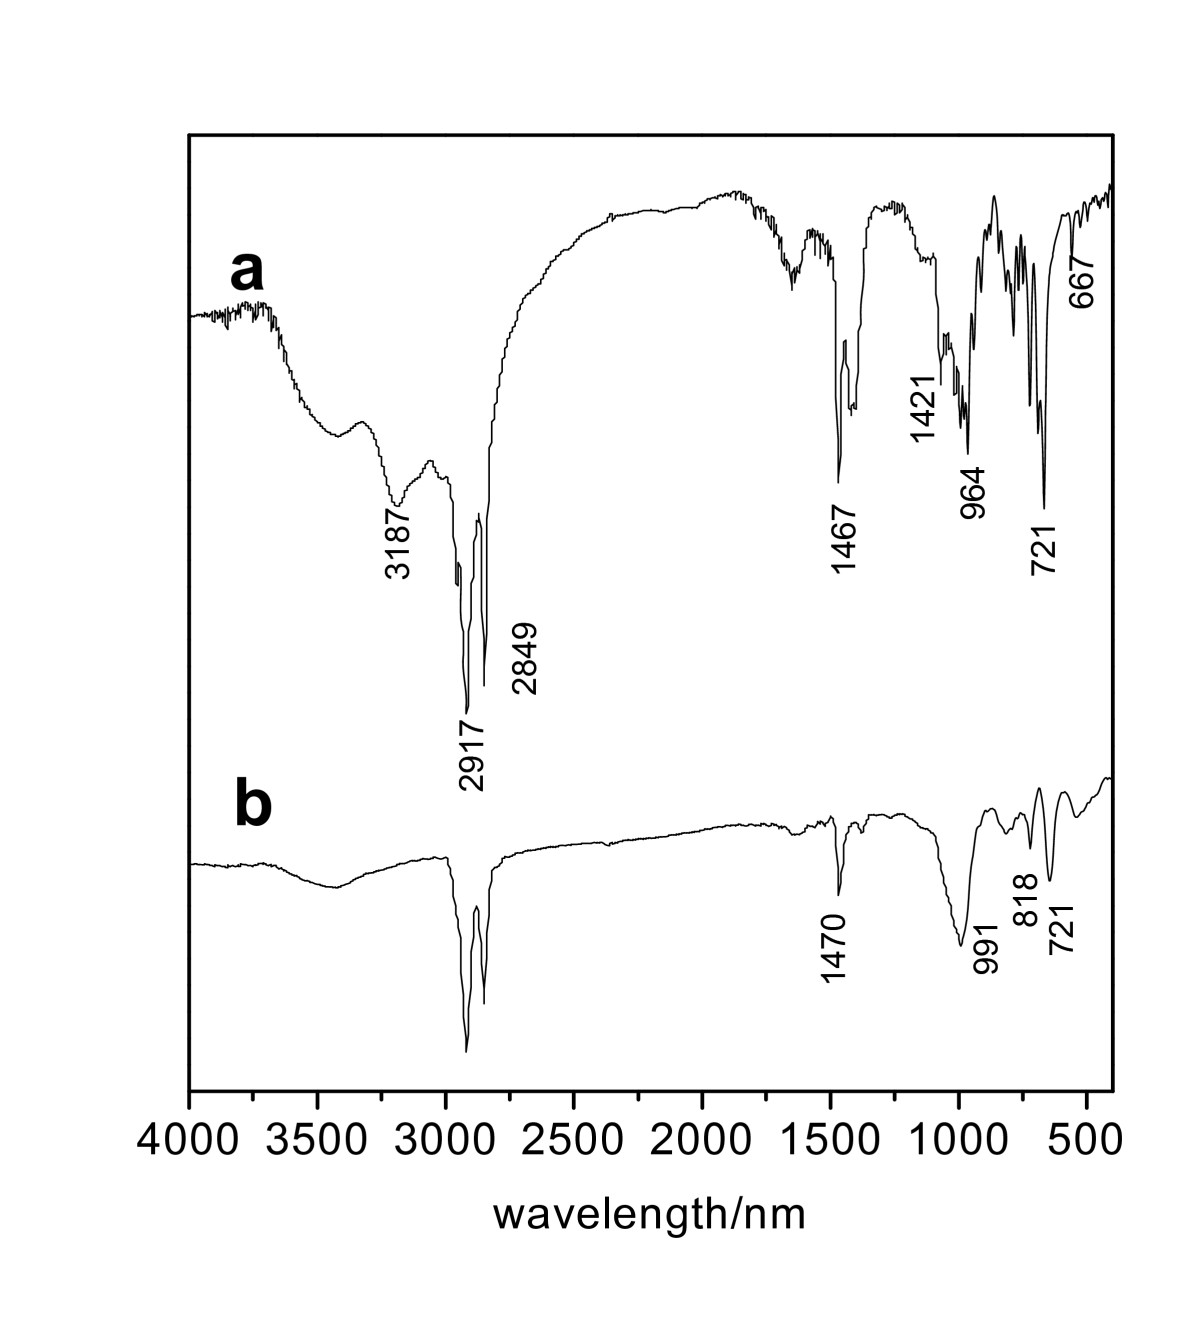 http://static-content.springer.com/image/art%3A10.1186%2F1556-276X-6-373/MediaObjects/11671_2011_Article_488_Fig2_HTML.jpg